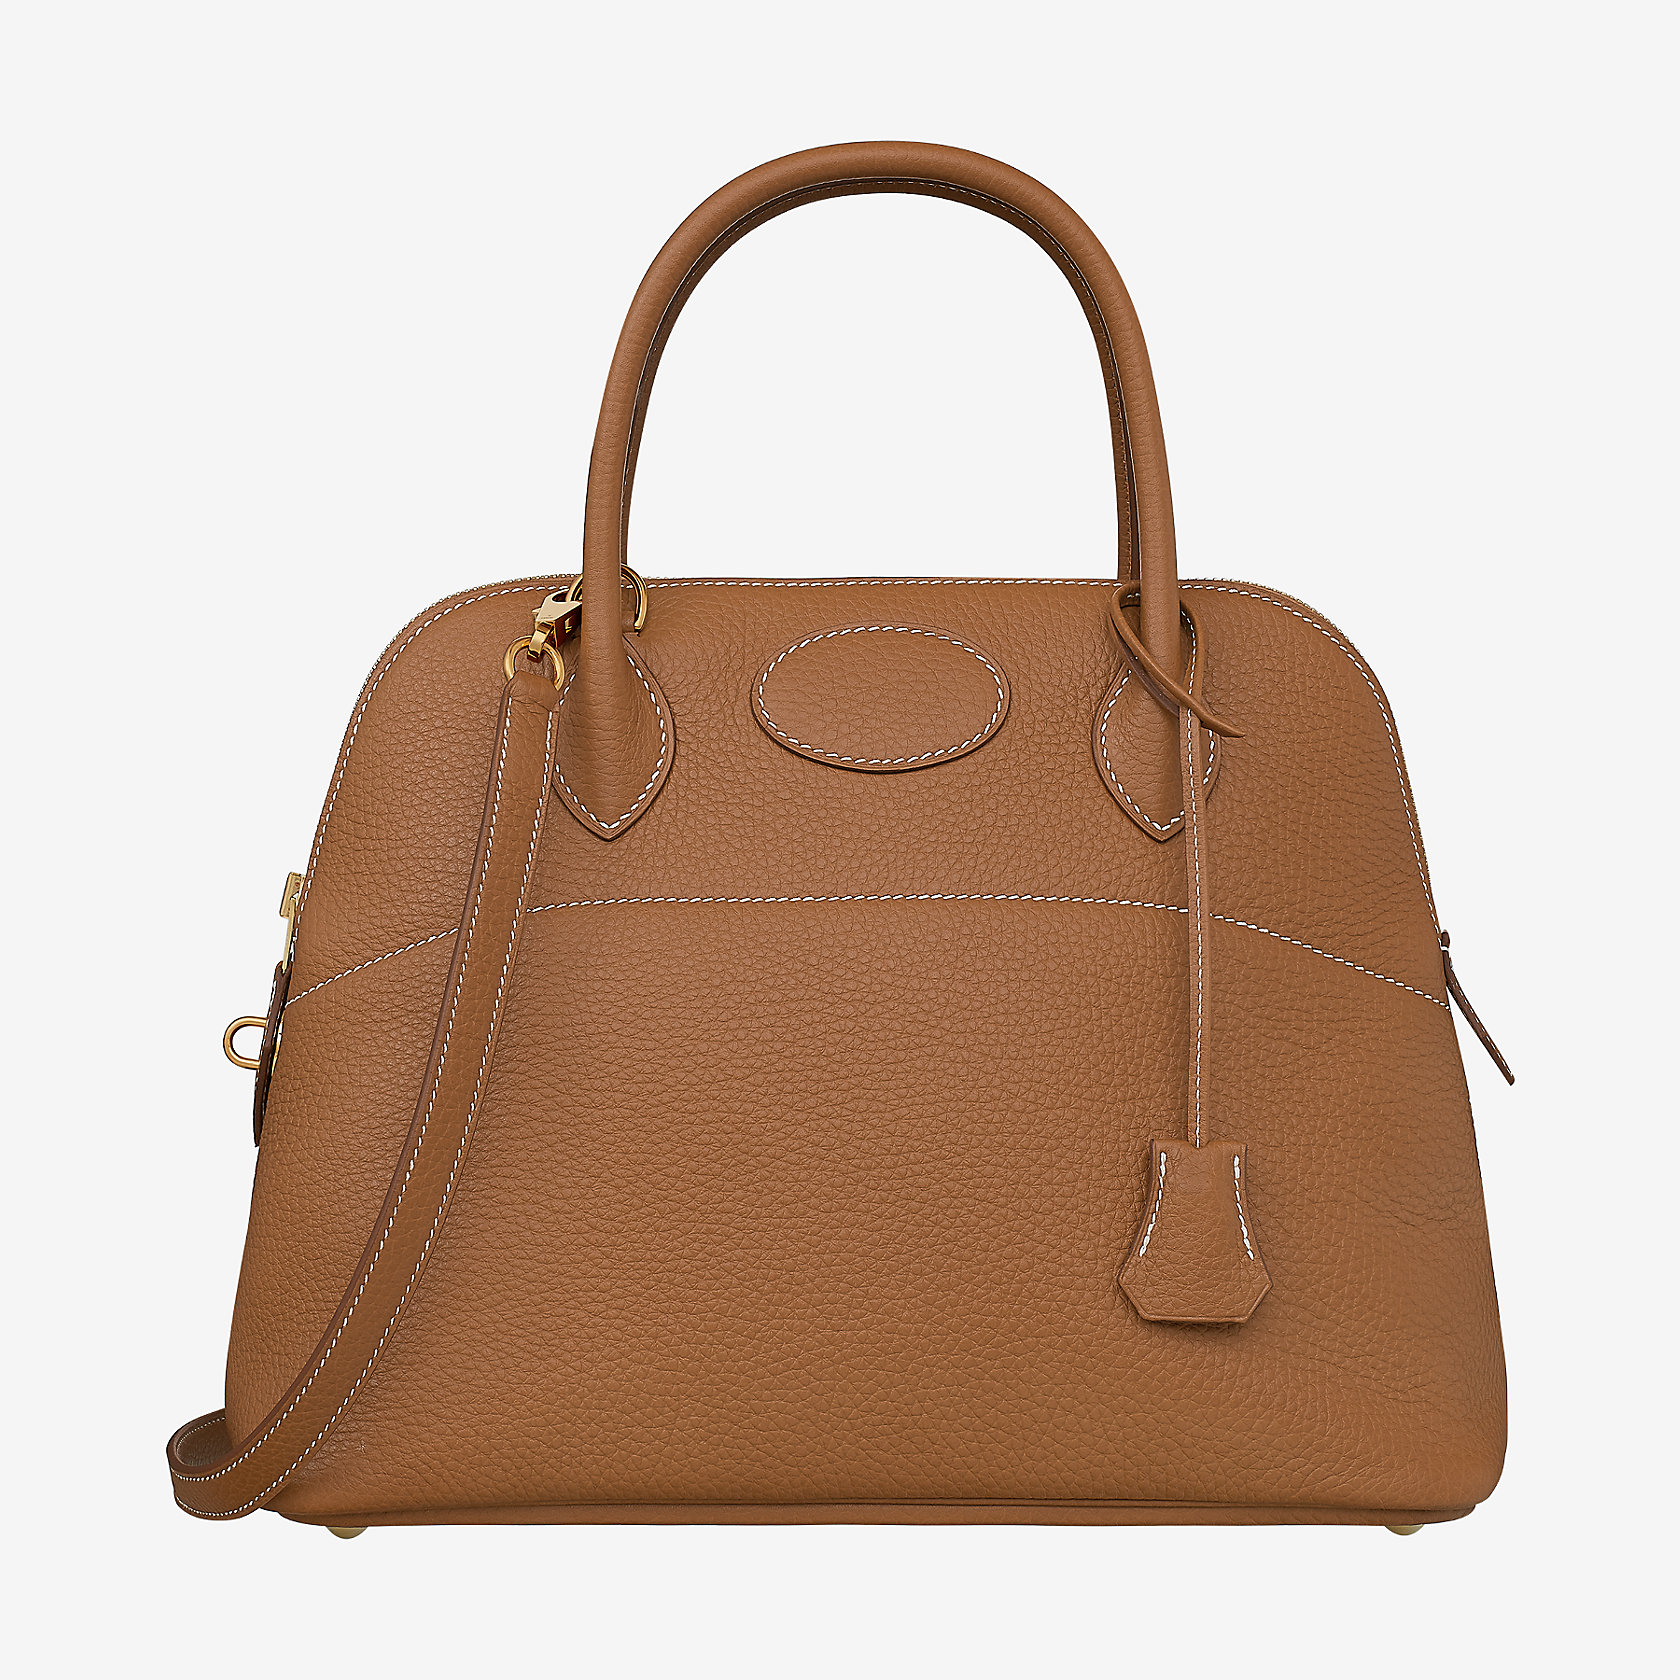 ab40d58db1 ... coupon code for bolide 31 bag hermès 5ce9c a73c5